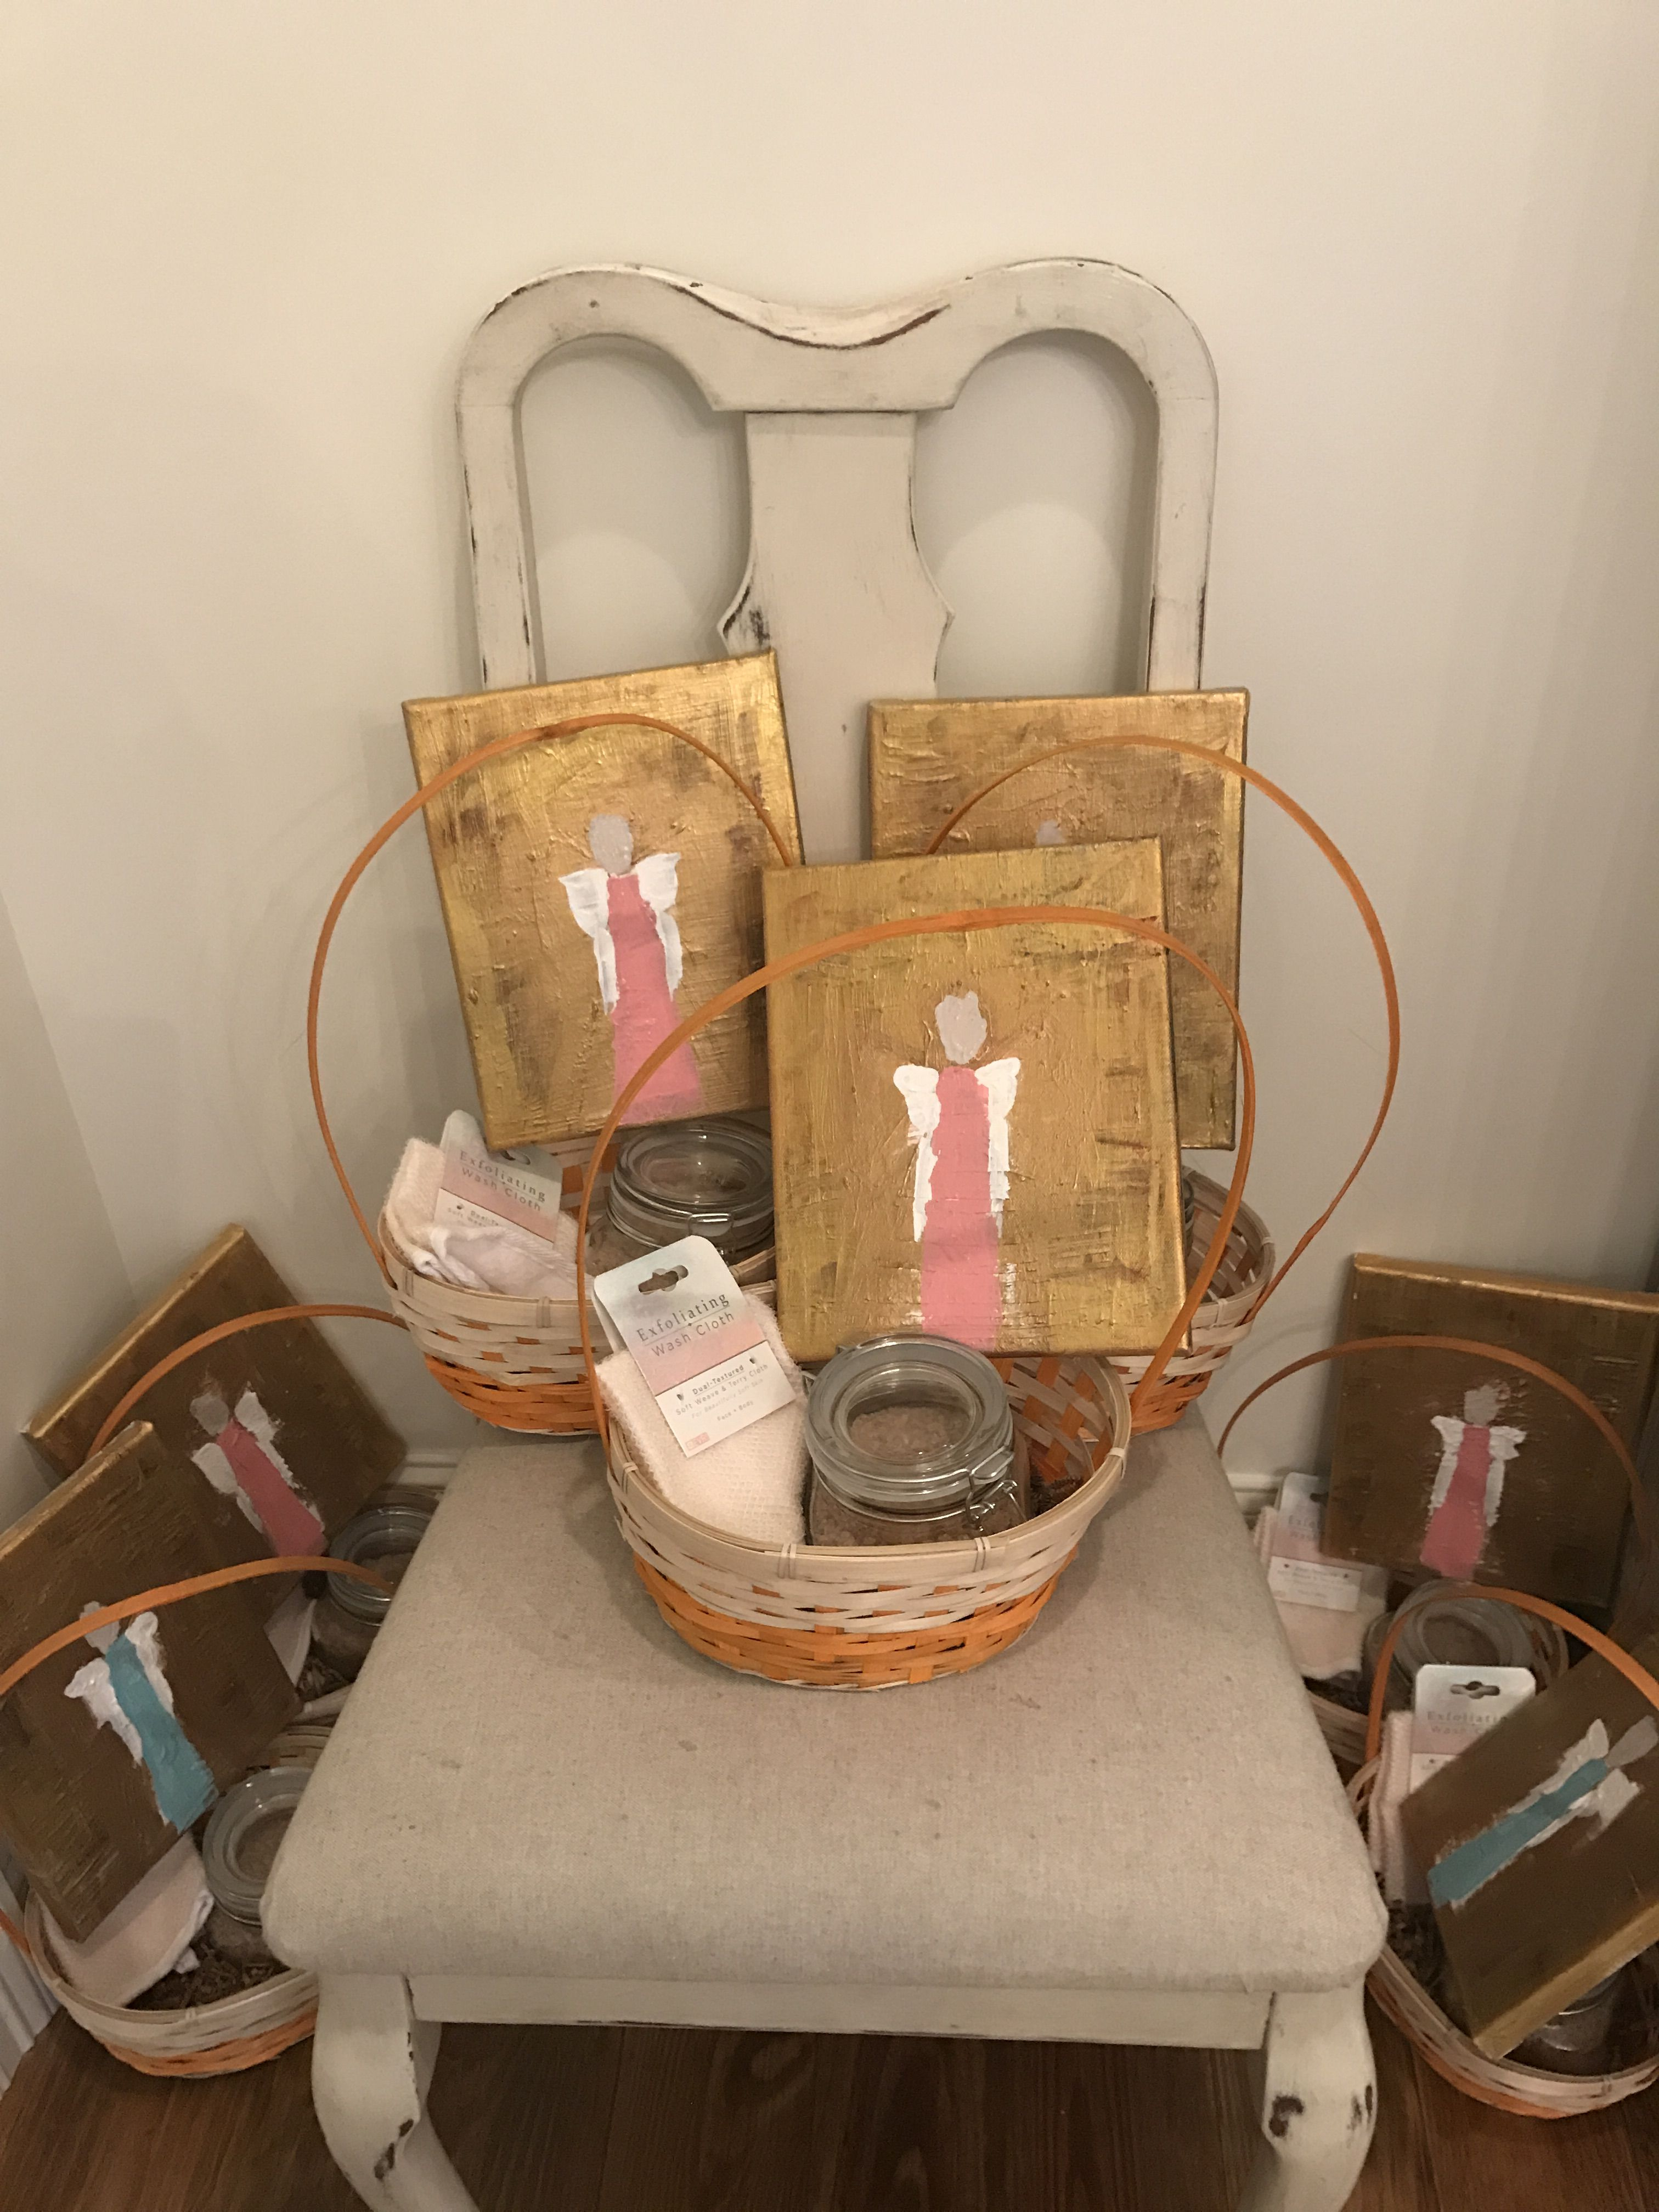 Baby shower hostess gifts painted angels and homemade sea